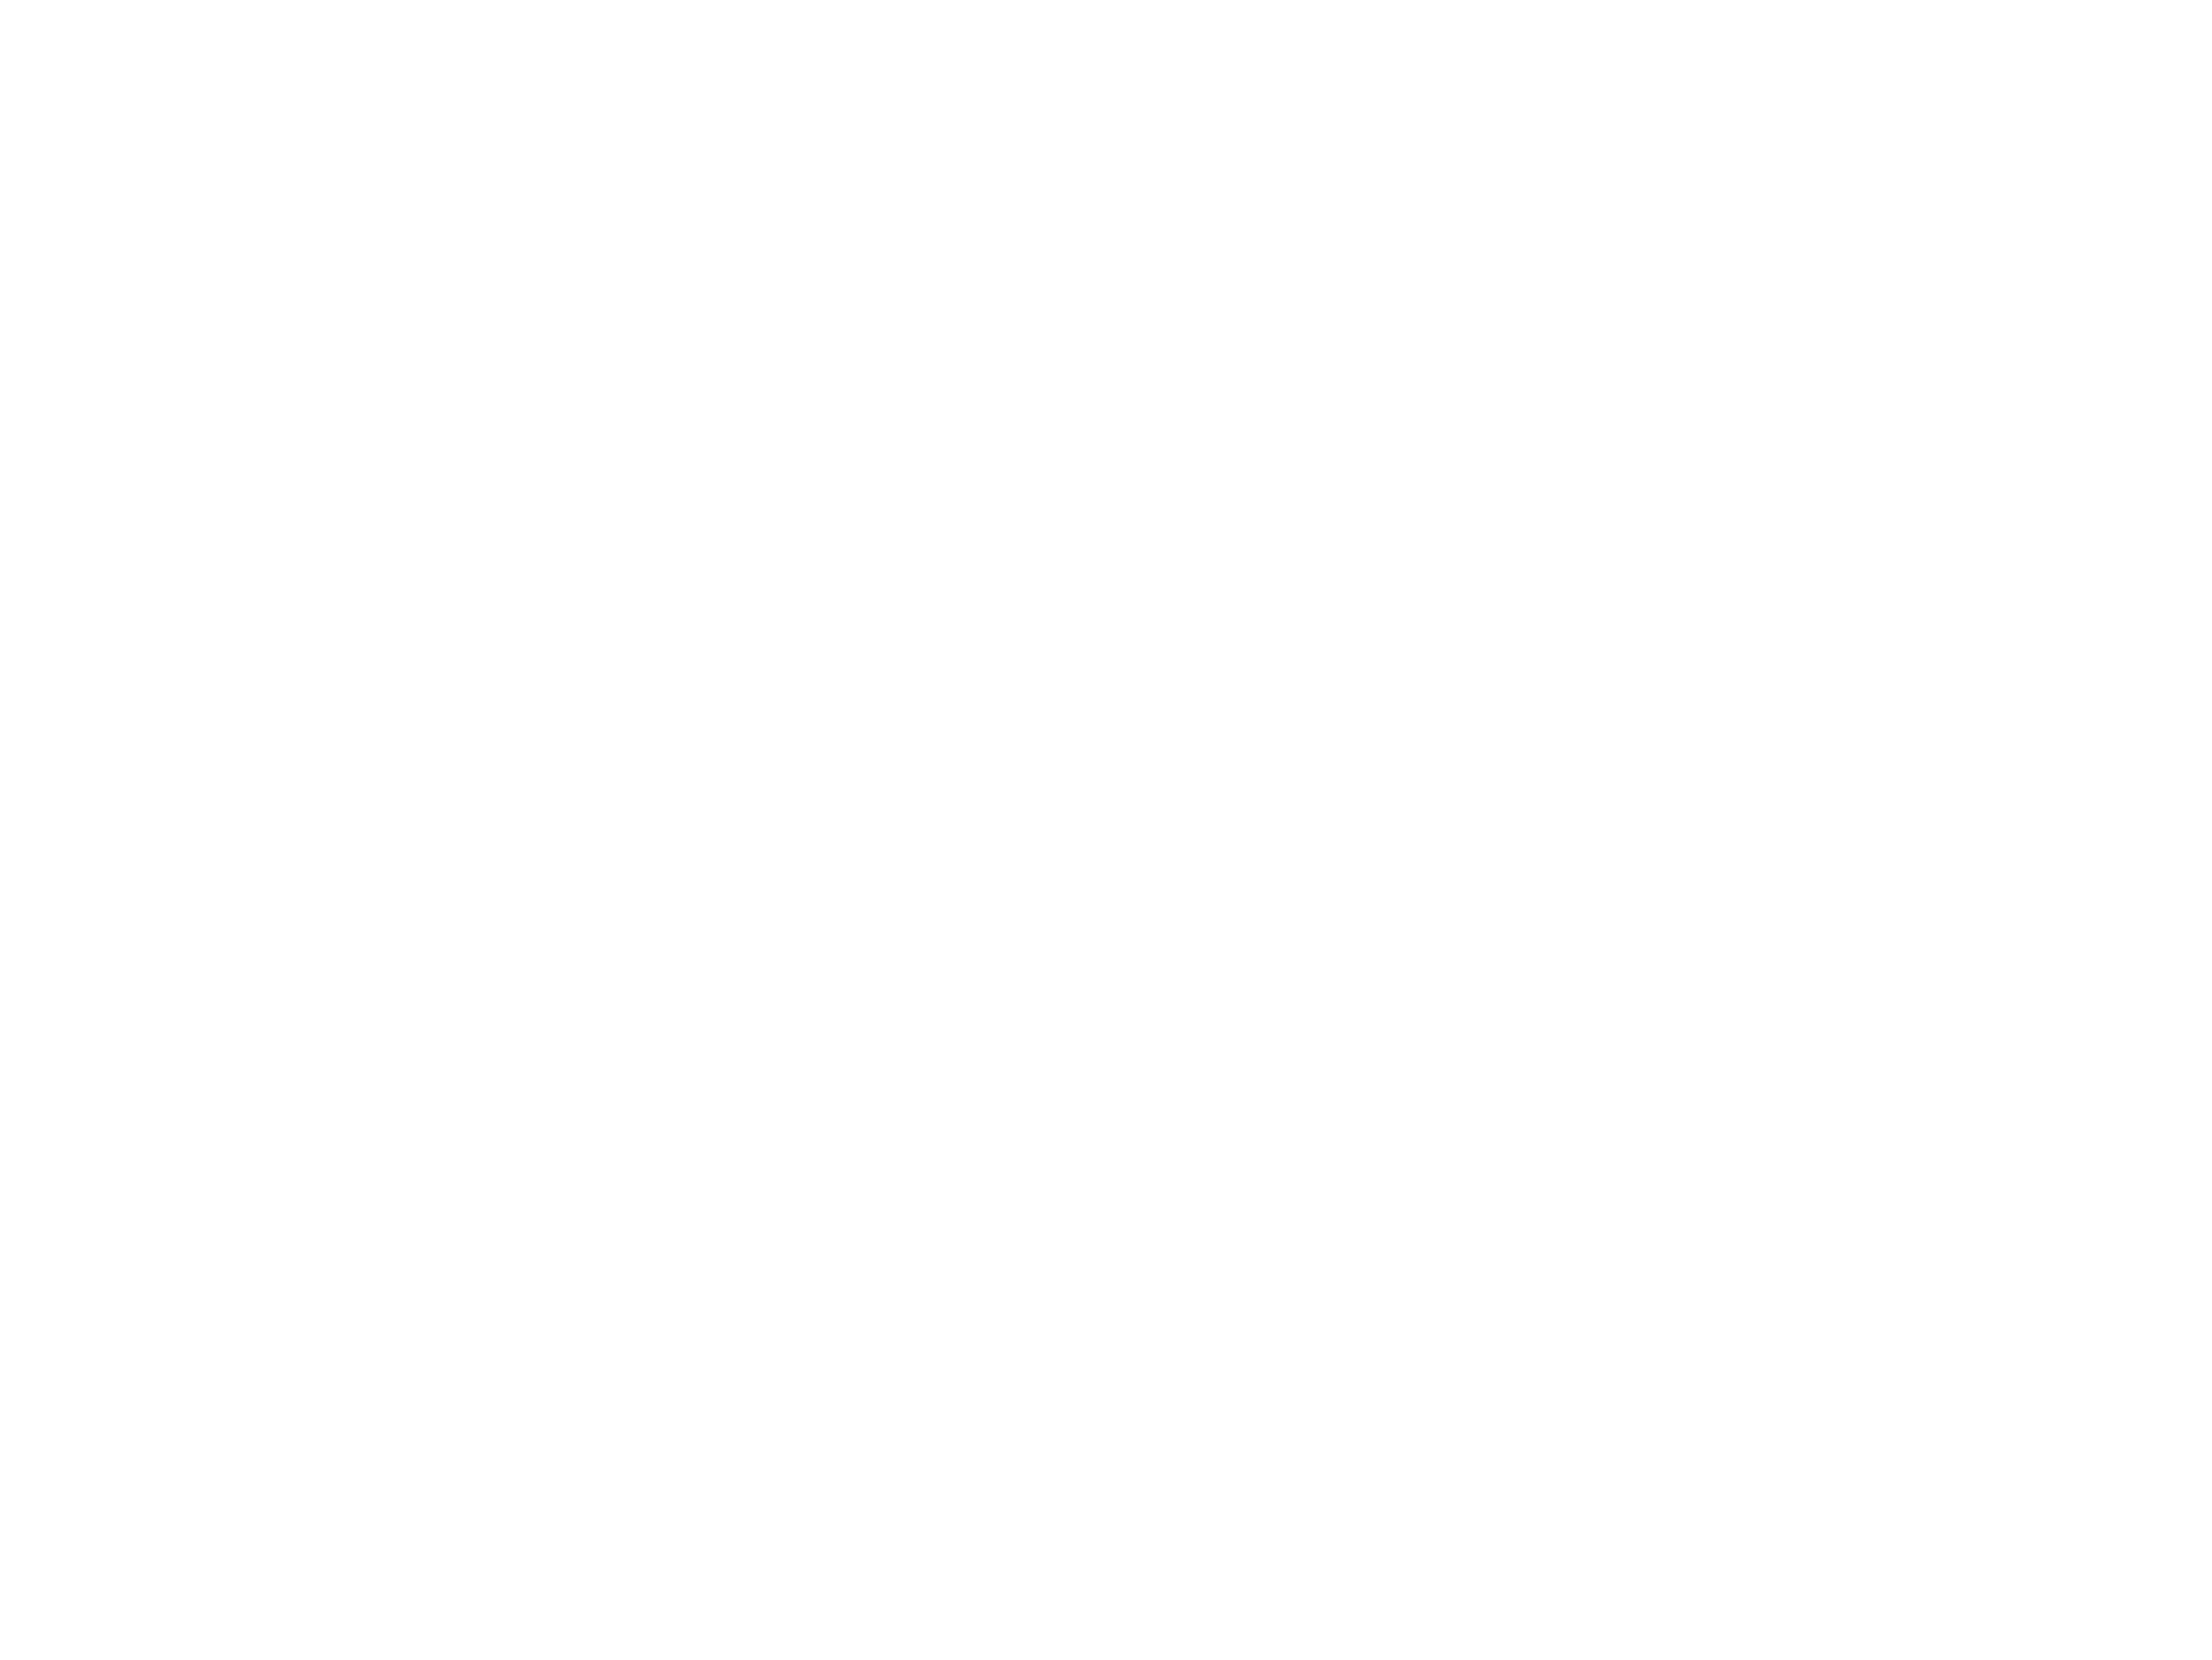 Black Star WEALTH level Up-04.png